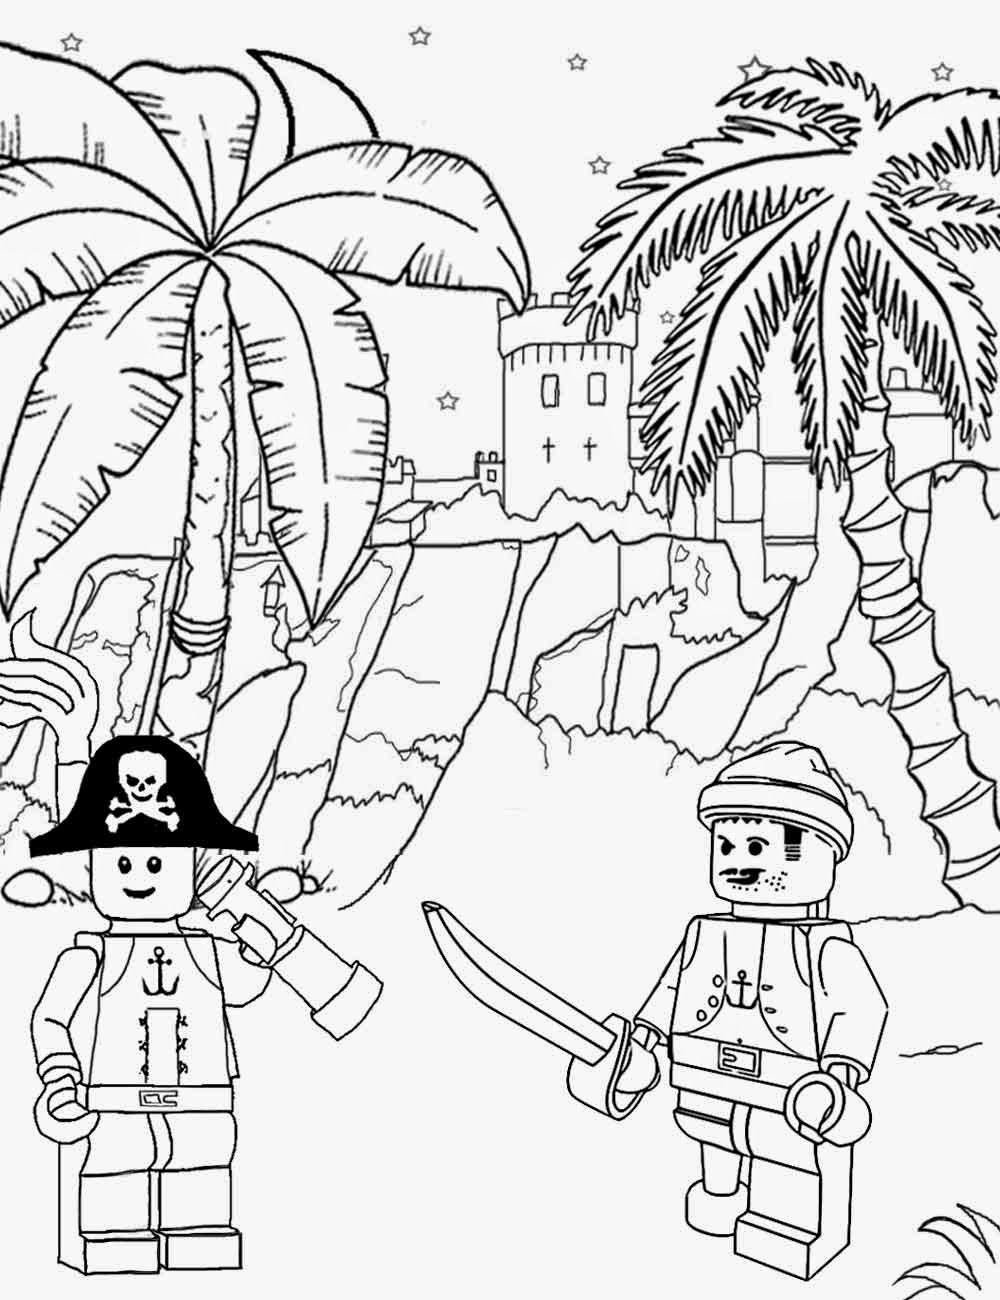 Legos coloring pages free printable ~ Free Coloring Pages Printable Pictures To Color Kids ...